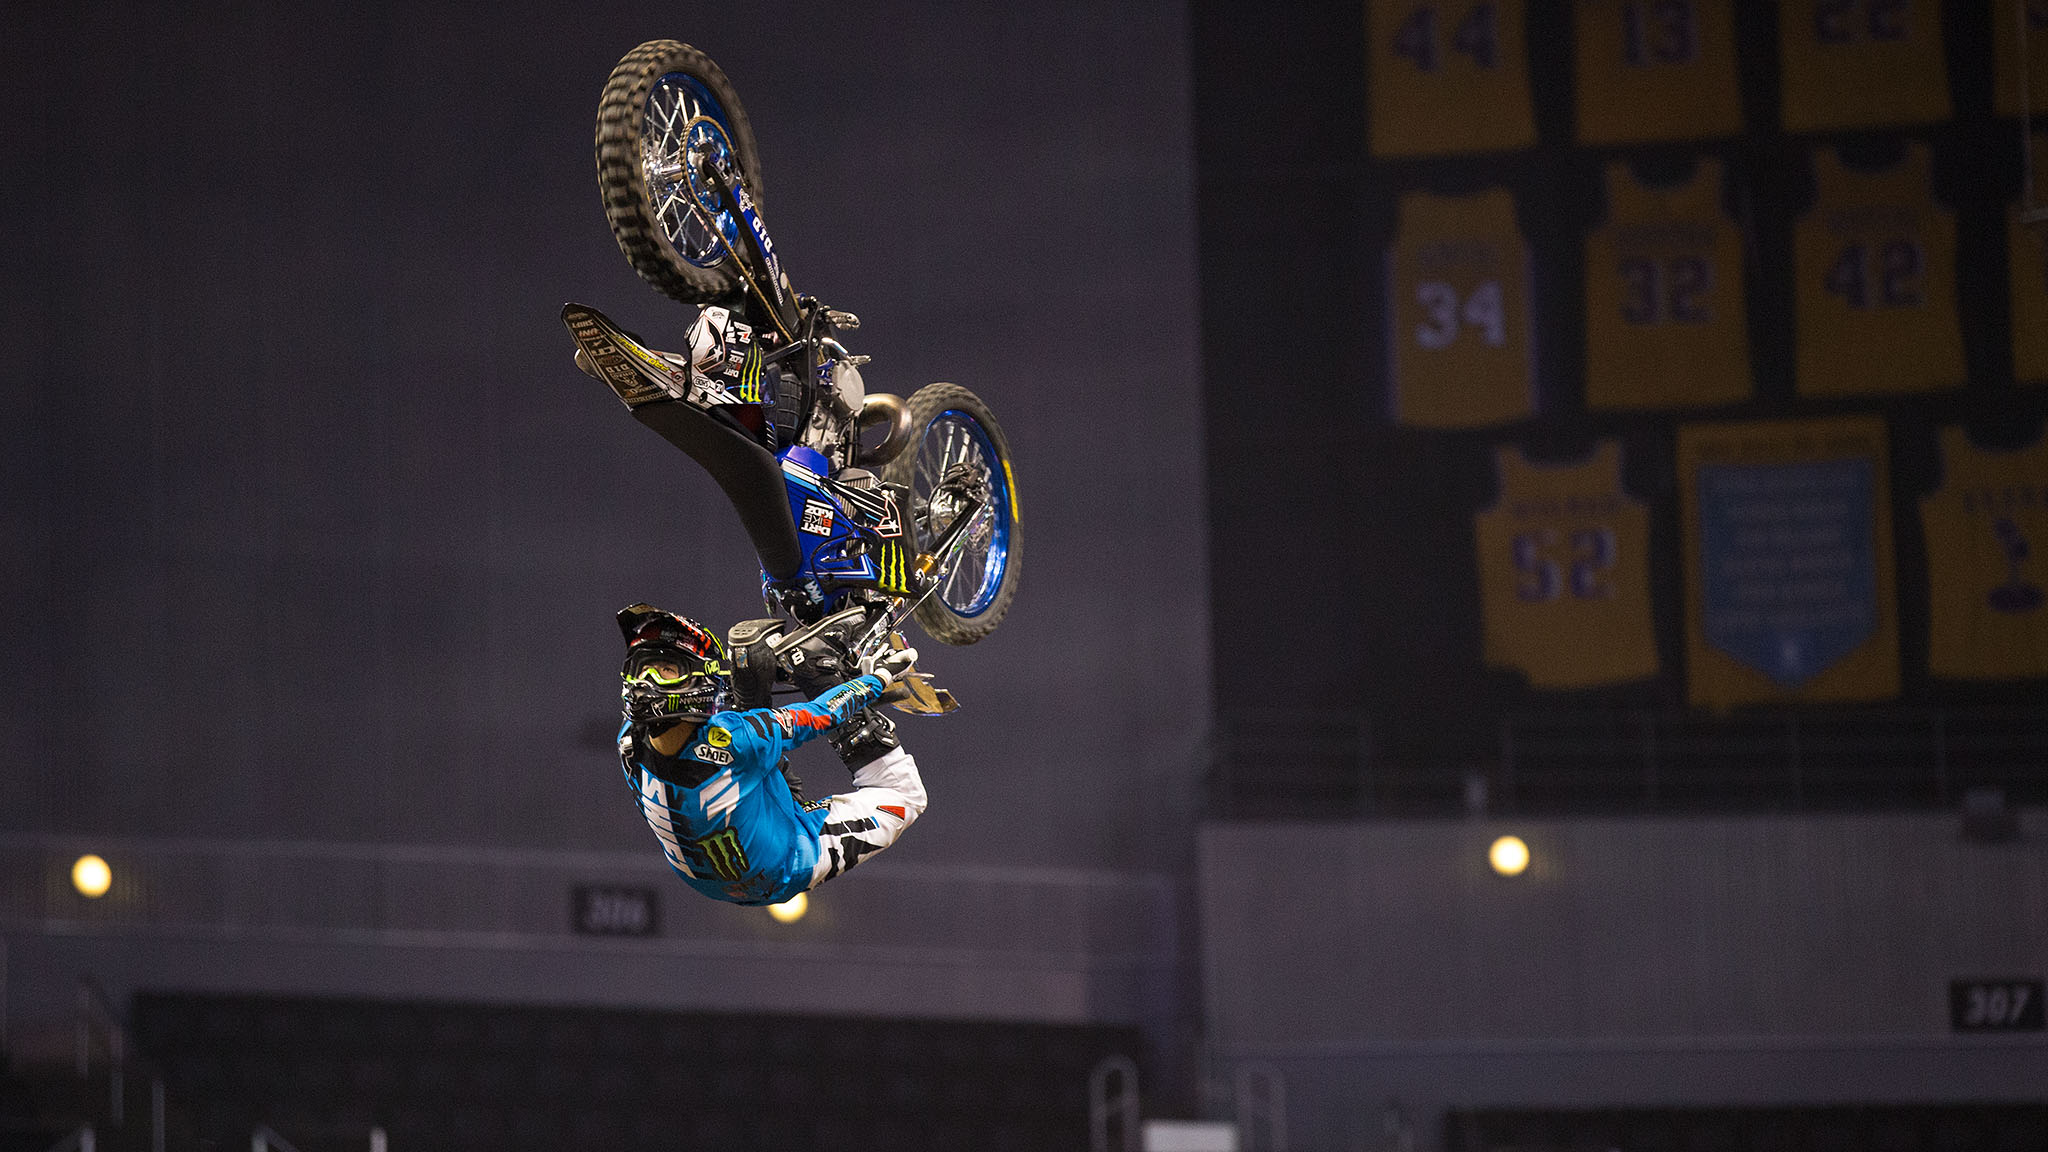 Because of bad-weather cancellations, Moto X Freestyle riders weren't able to compete in the past two X Games, which means there were no opportunities for challengers to unseat two-time defending champ Taka Higashino from his gold-medal podium position until this week at X Games Los Angeles.